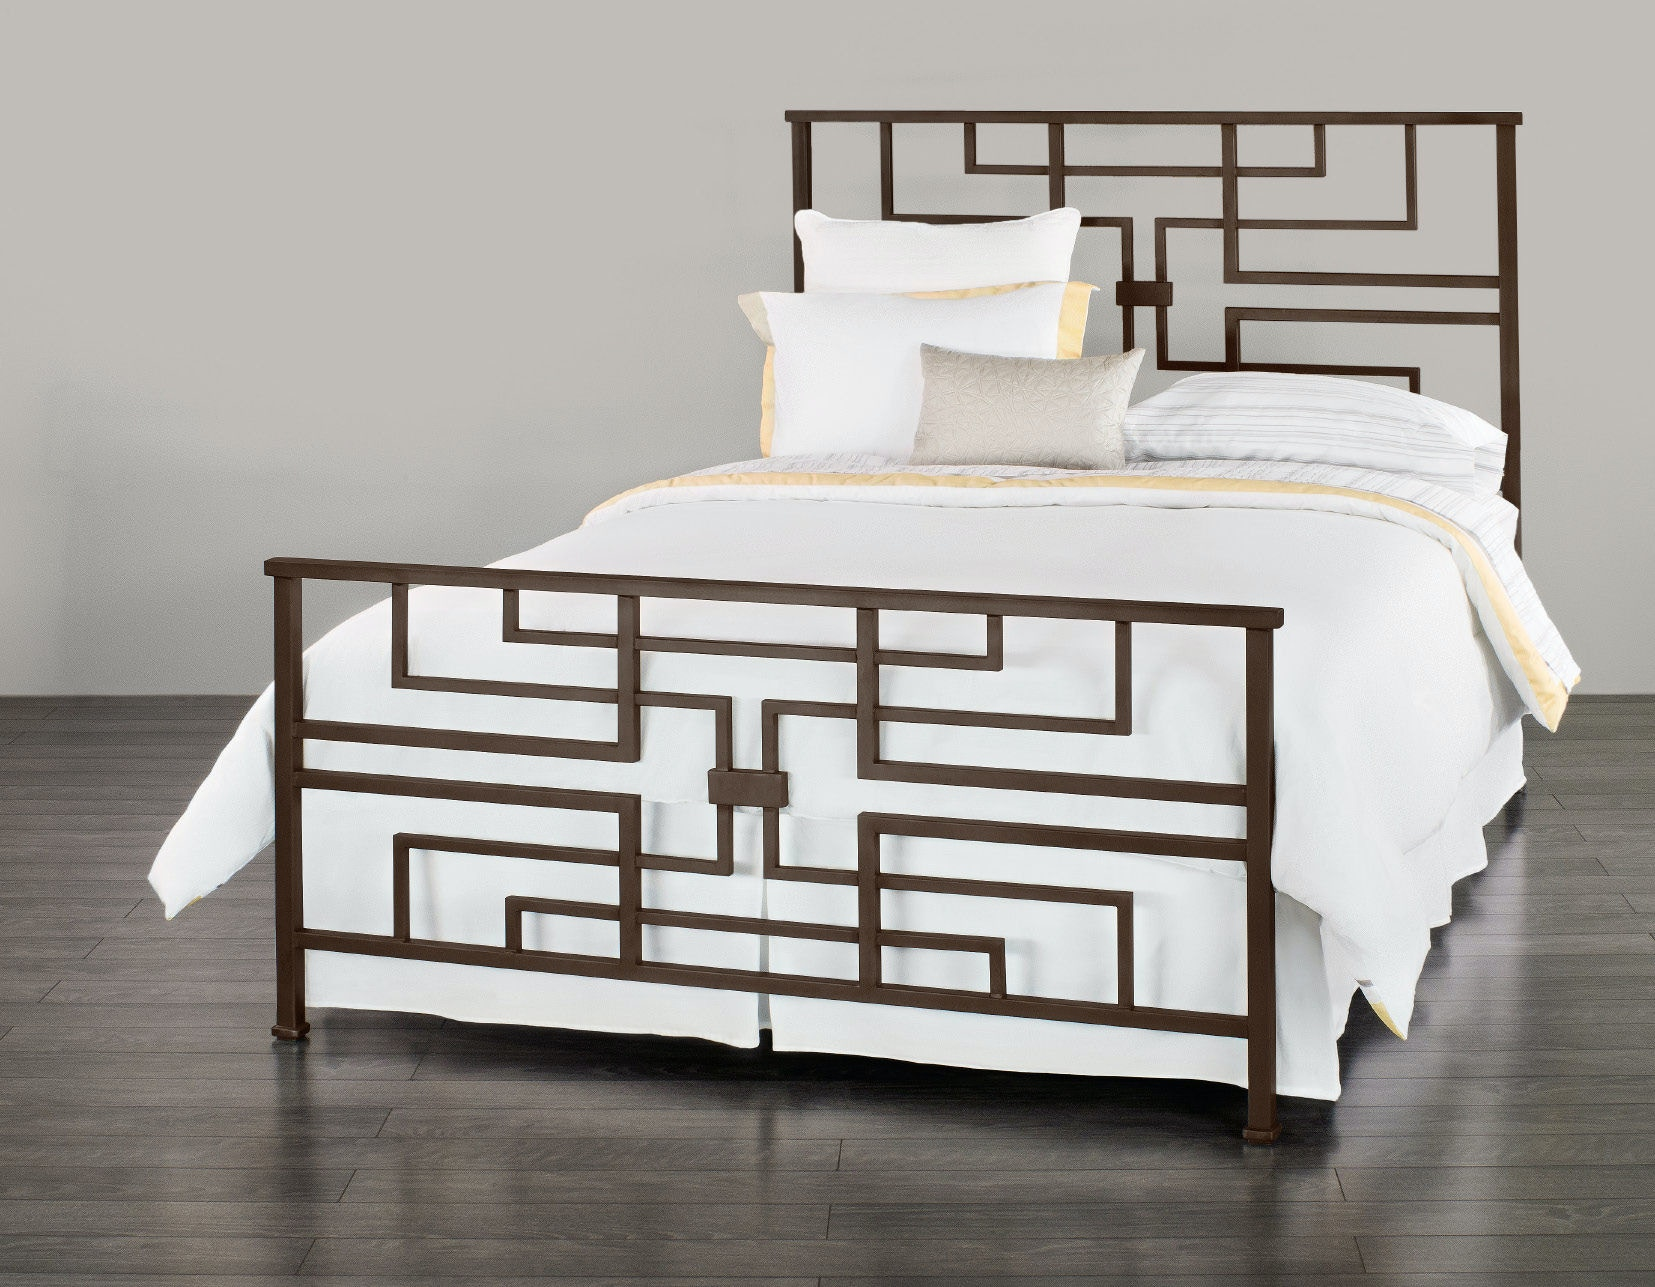 Wesley Allen Complete Bed Cb1180. Floor Patterns. Outdoor Ottoman. Carpet Treads. Red Metal Barn. Small Closet Design. Difference Between Ceramic And Porcelain. Murano Glass Chandelier. Woven Wood Shades